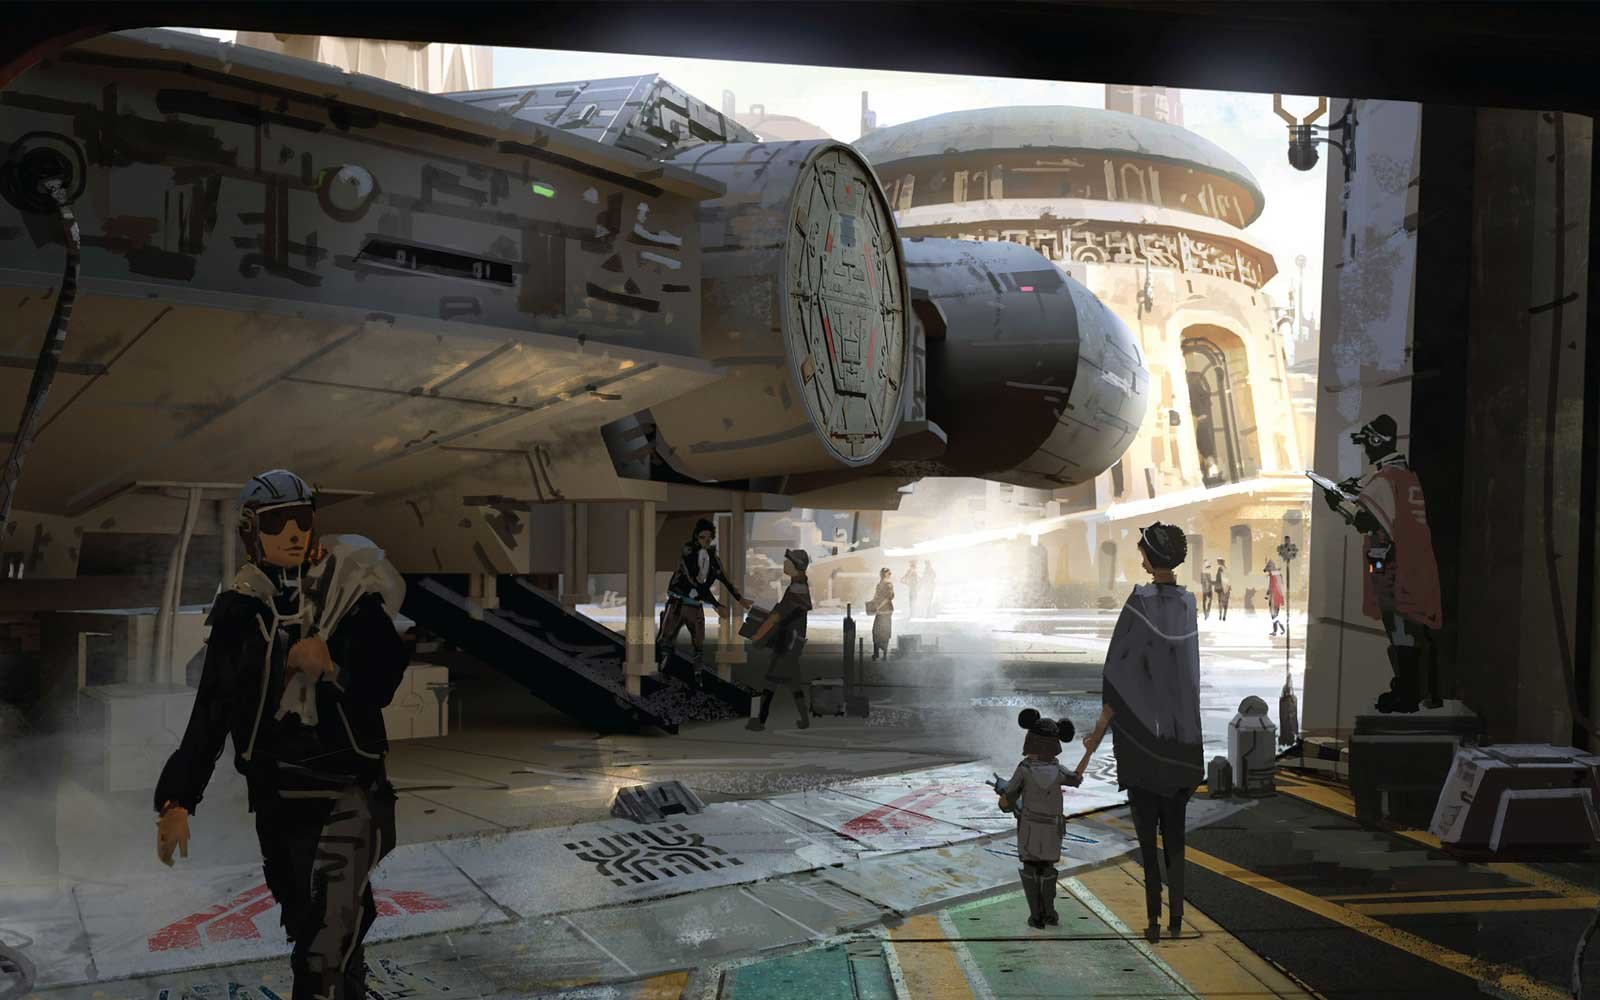 Star Wars-themed lands will be coming to Disneyland park in Anaheim, Calif., and Disney's Hollywood Studios in Orlando, Fla.